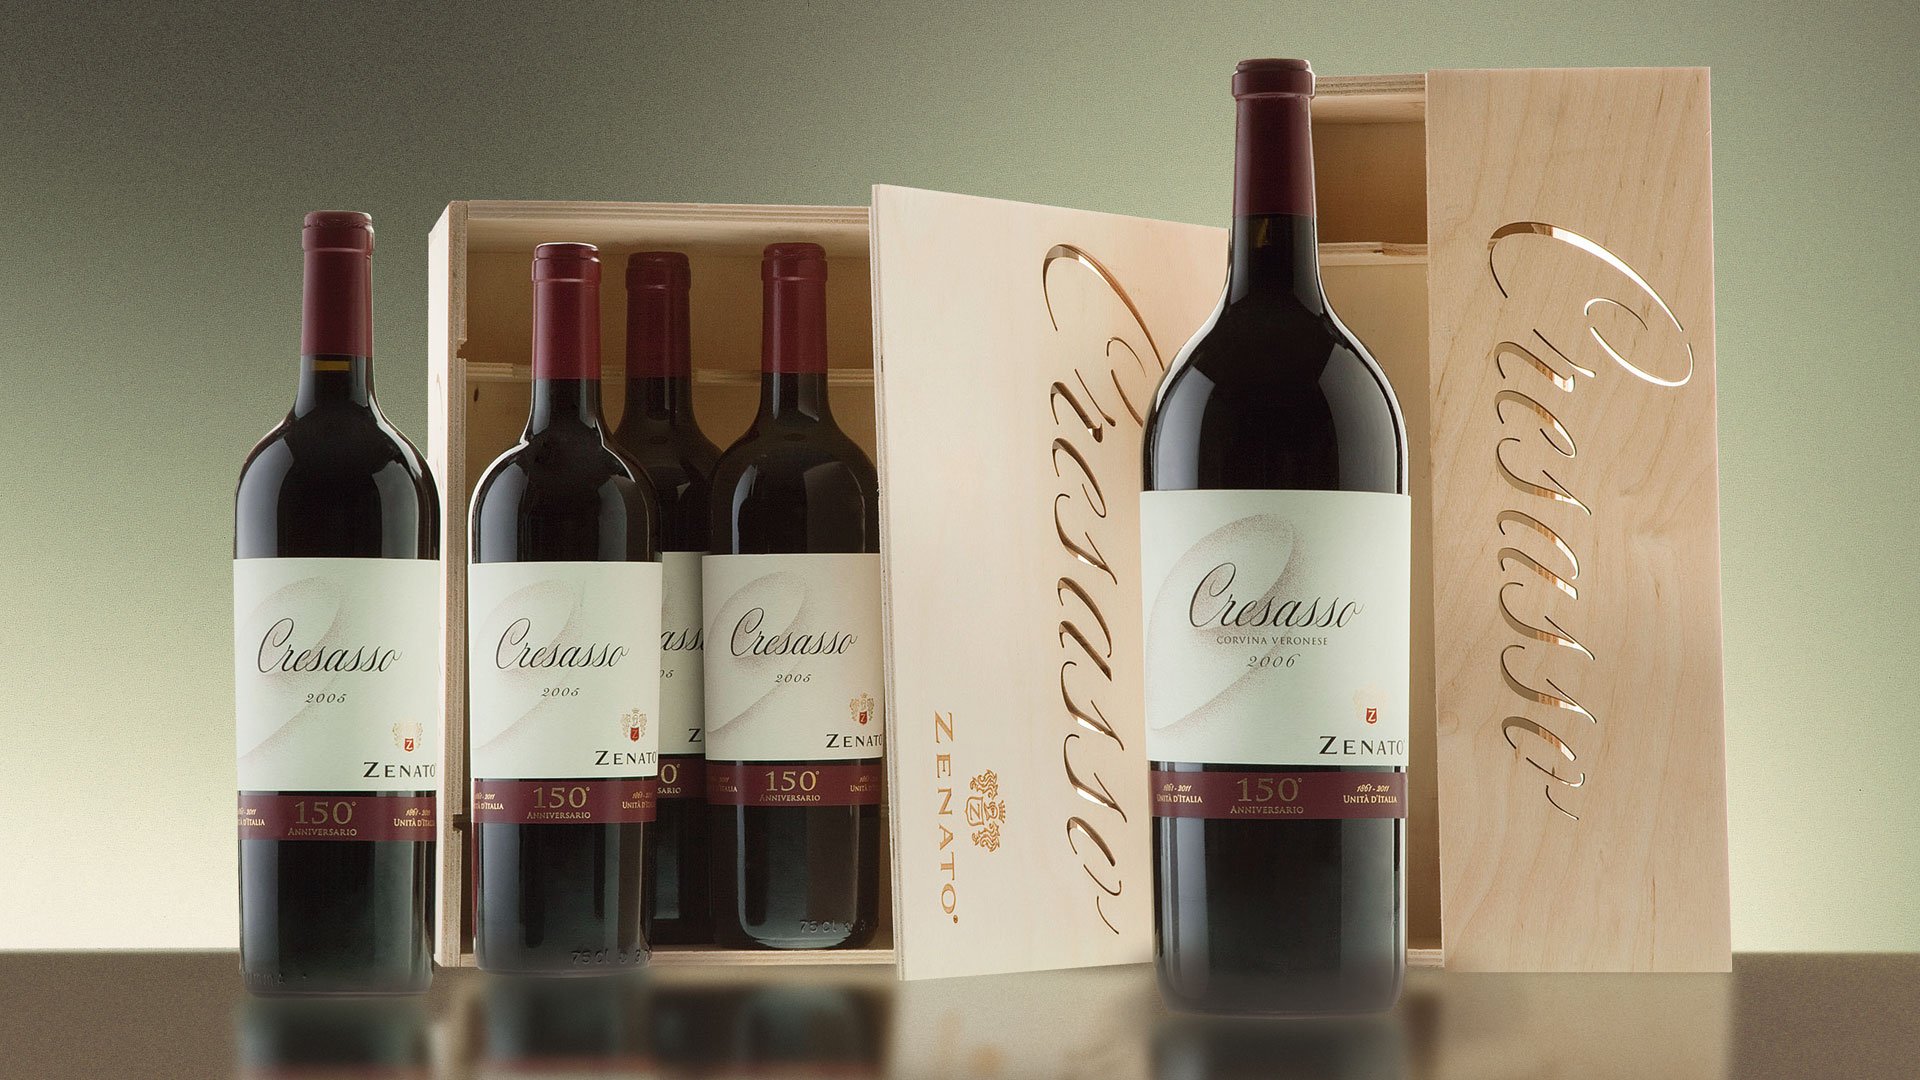 Zenato Cresasso packaging